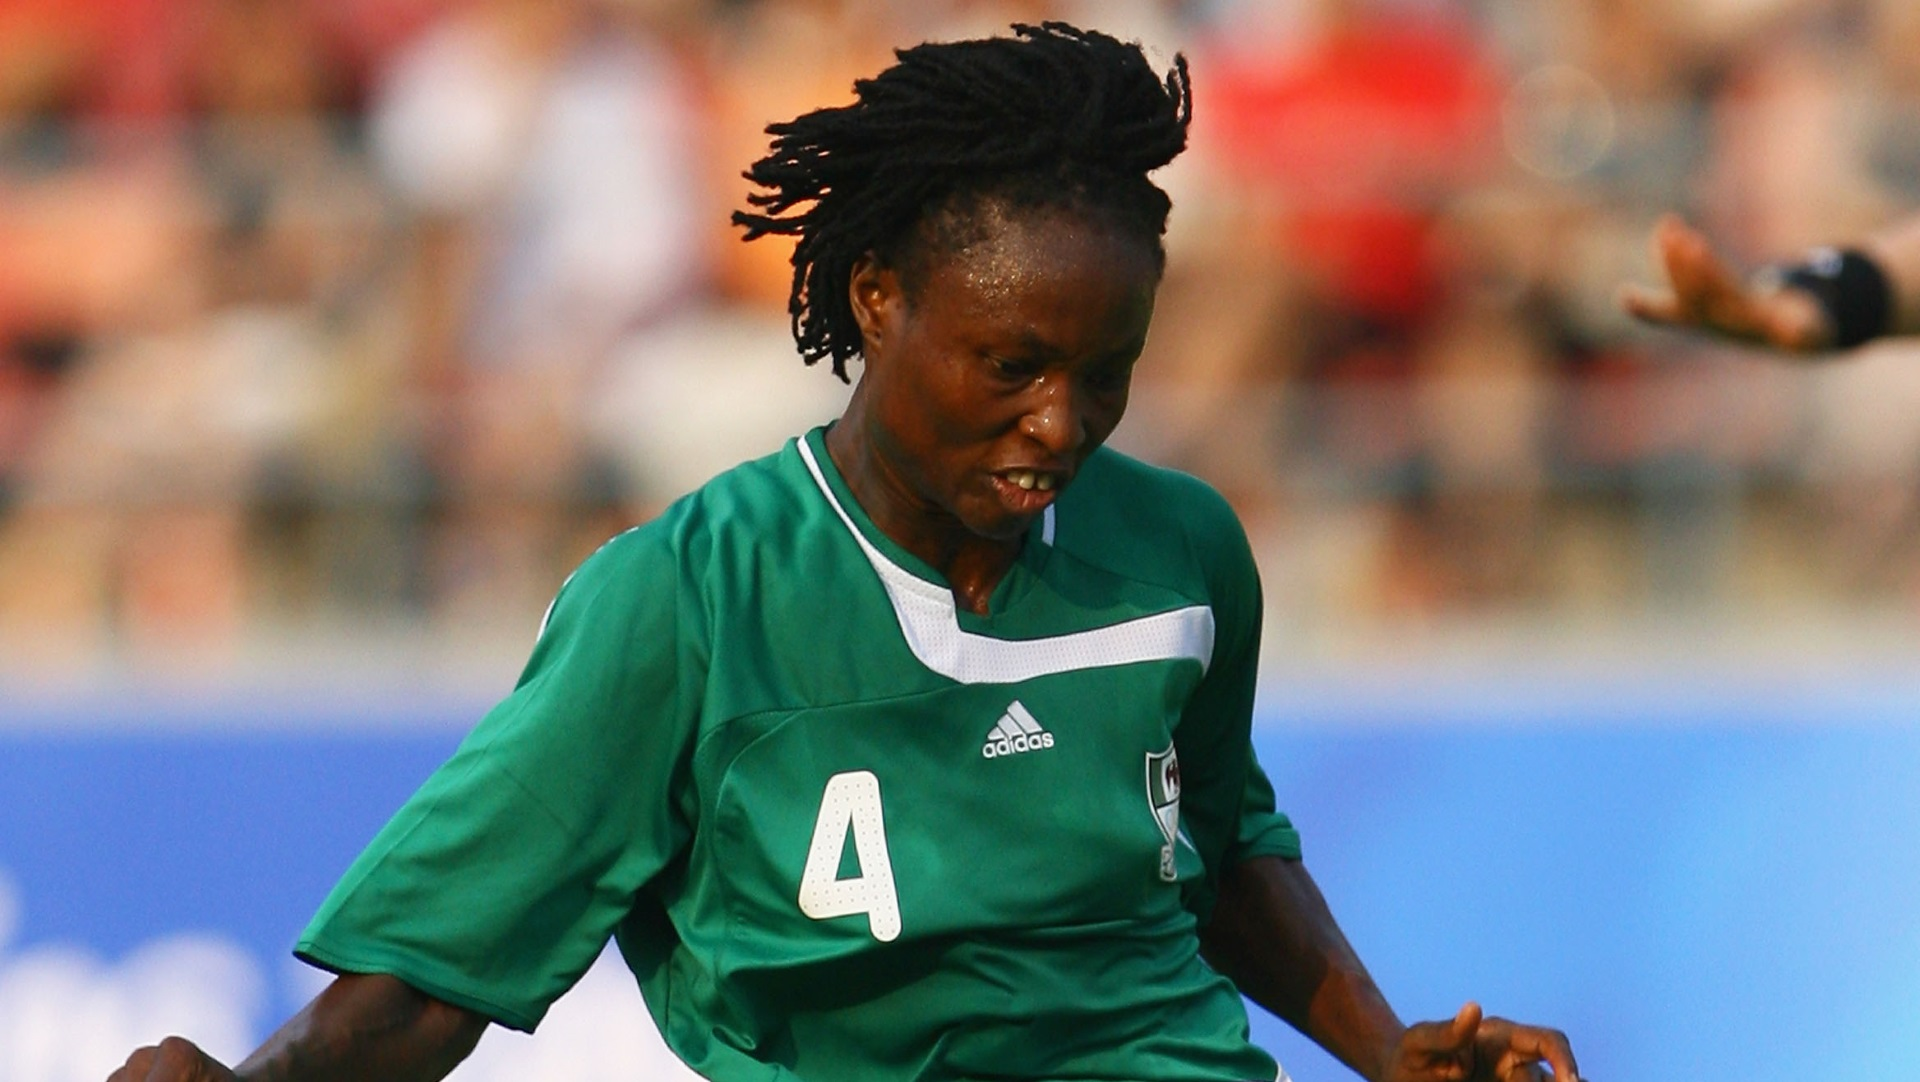 'Make and break the records girl' - Nkwocha backs Oshoala to surpass her African feat